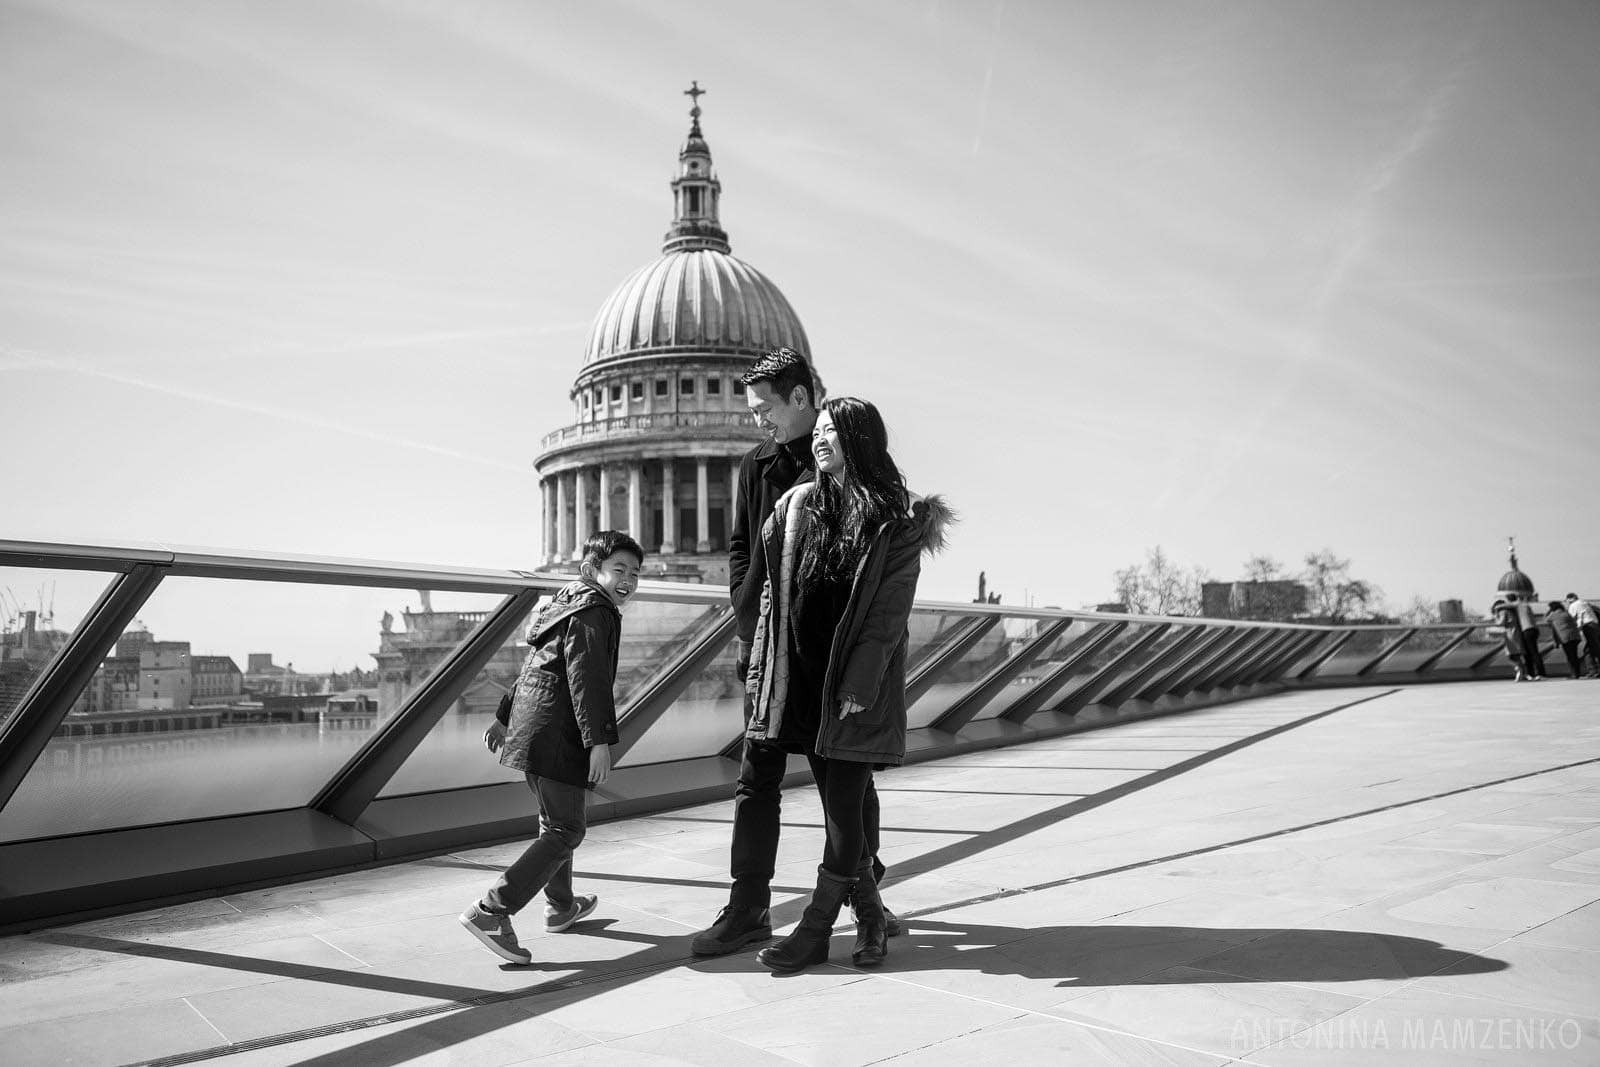 family photoshoot in the City of London with St Paul's Cathedral in the background